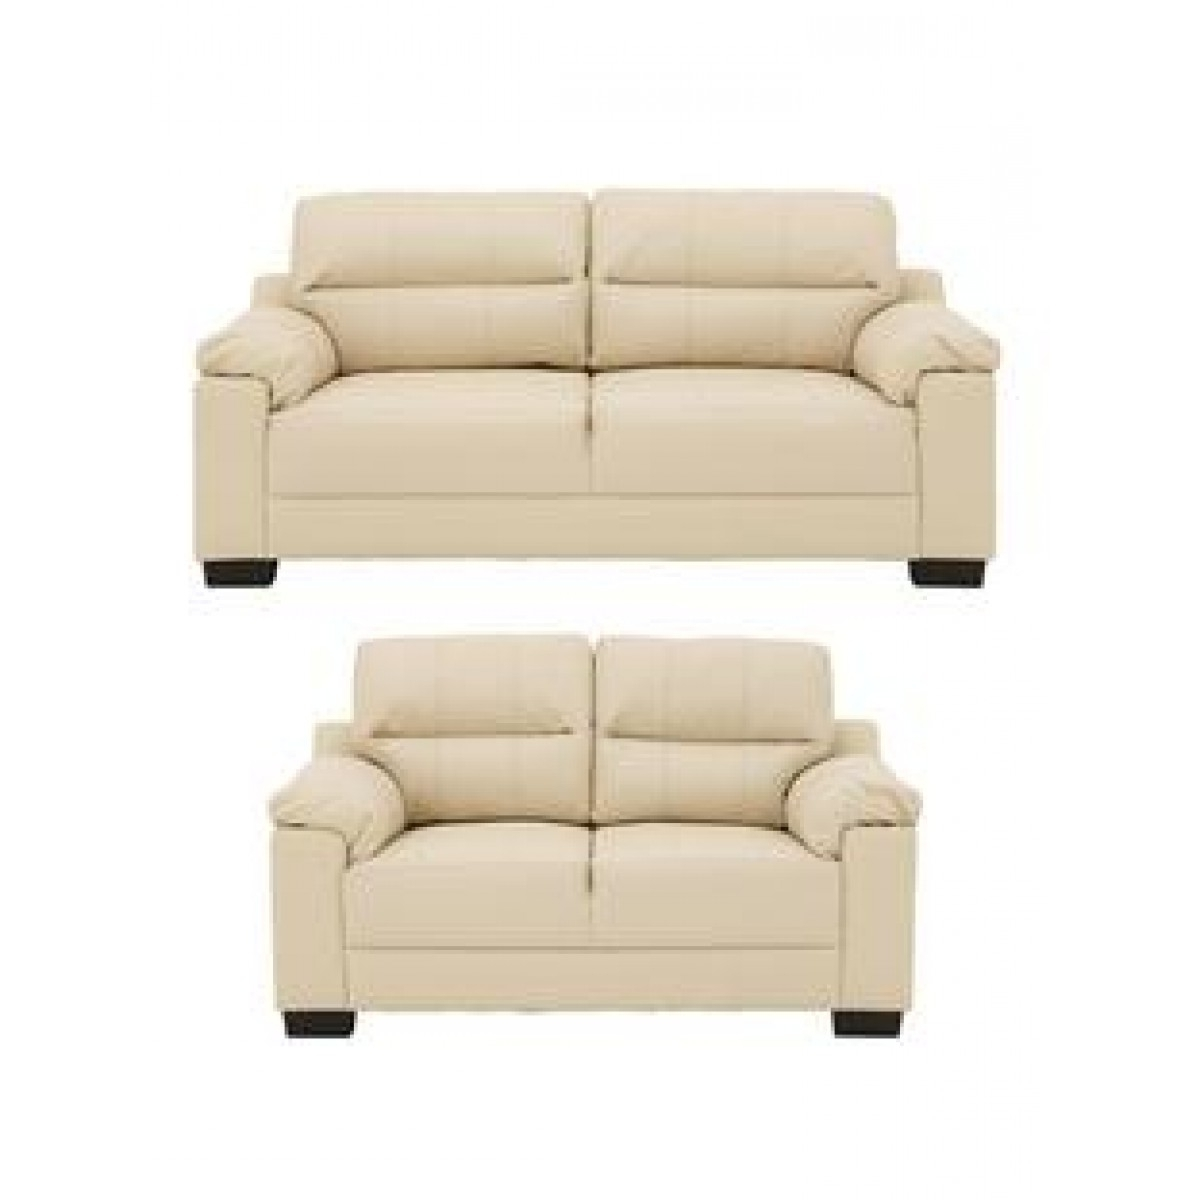 2 Seater Sofas With Regard To Well Known Saskia 3 Seater Plus 2 Seater Sofa Set – Furnico Village (View 17 of 20)